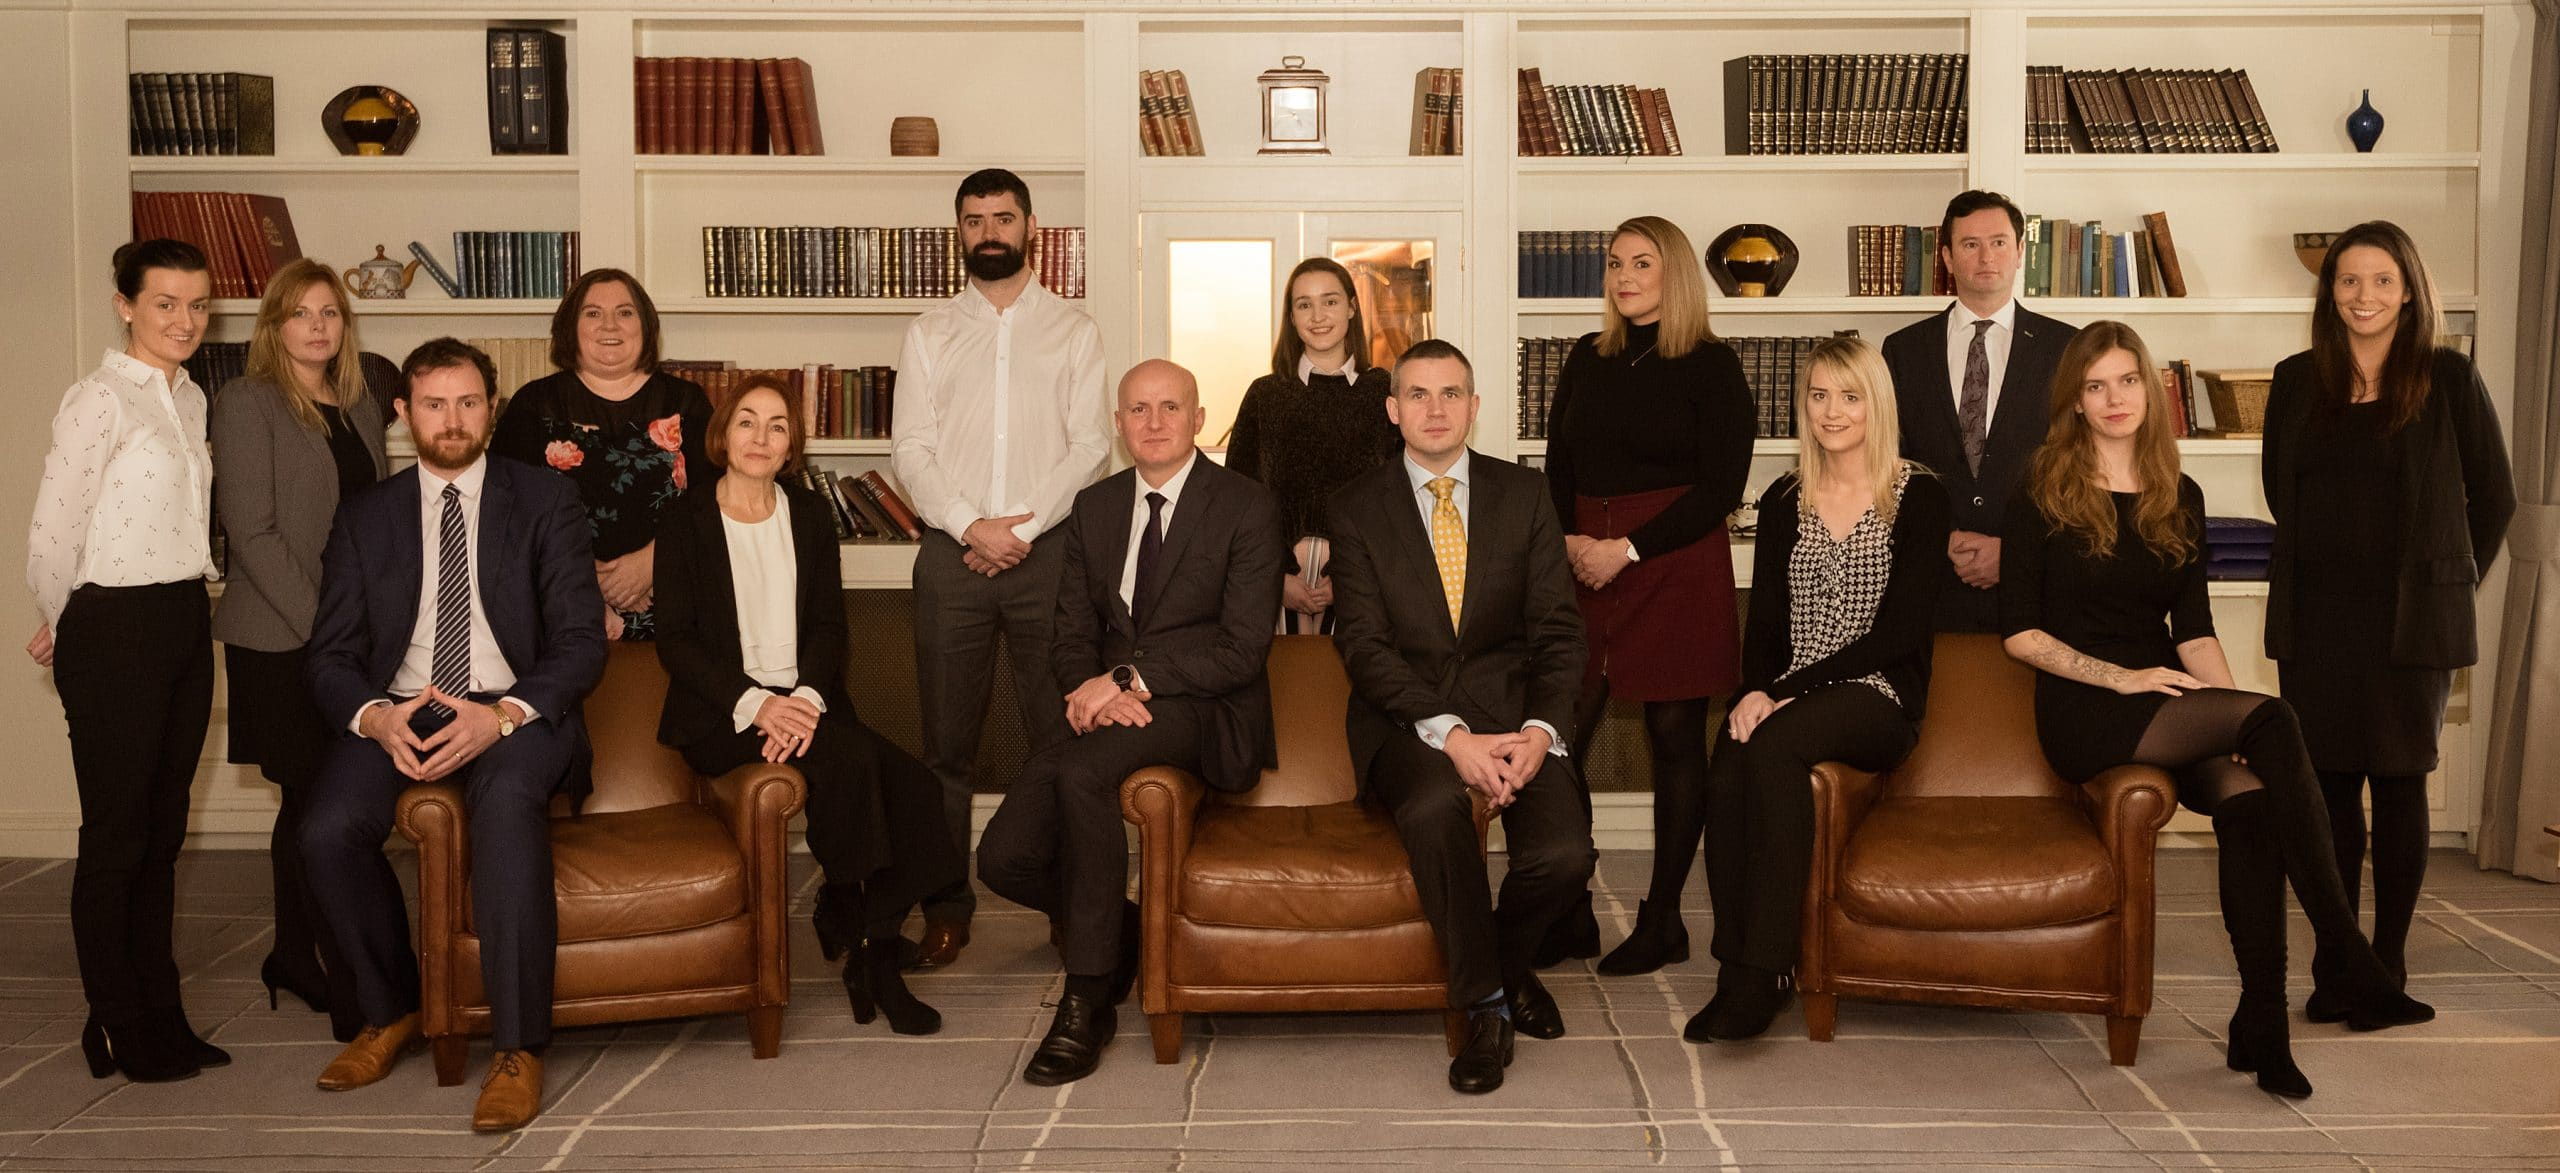 McCarthy + Co. Personal Injury Claims and Medical Negligence Solicitors - Team Photo November 2018